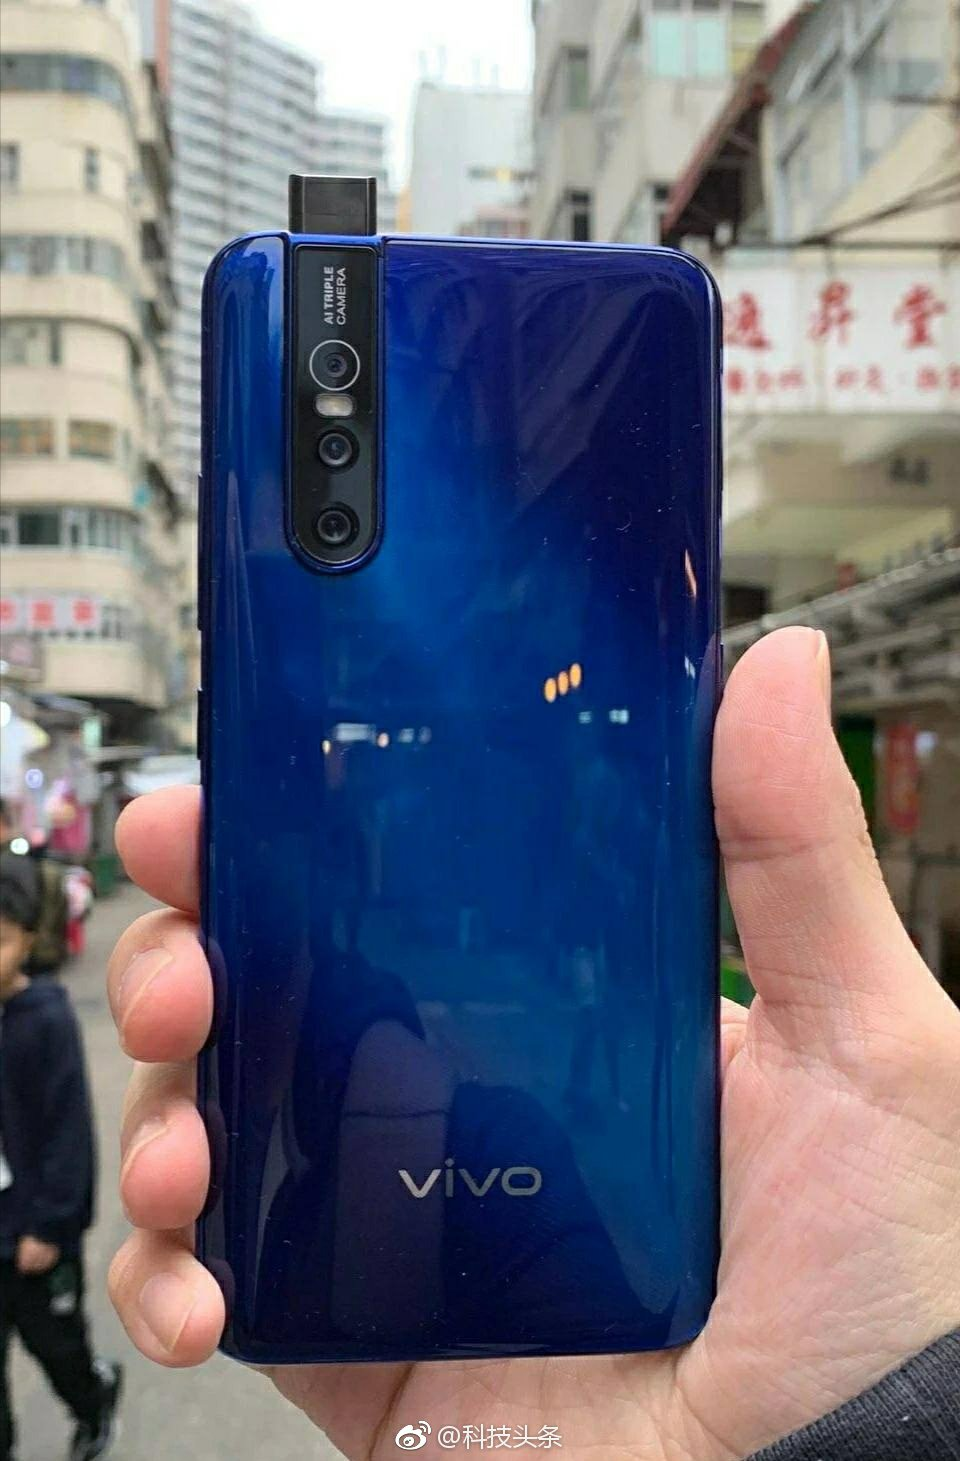 Vivo V15 Pro hands on images